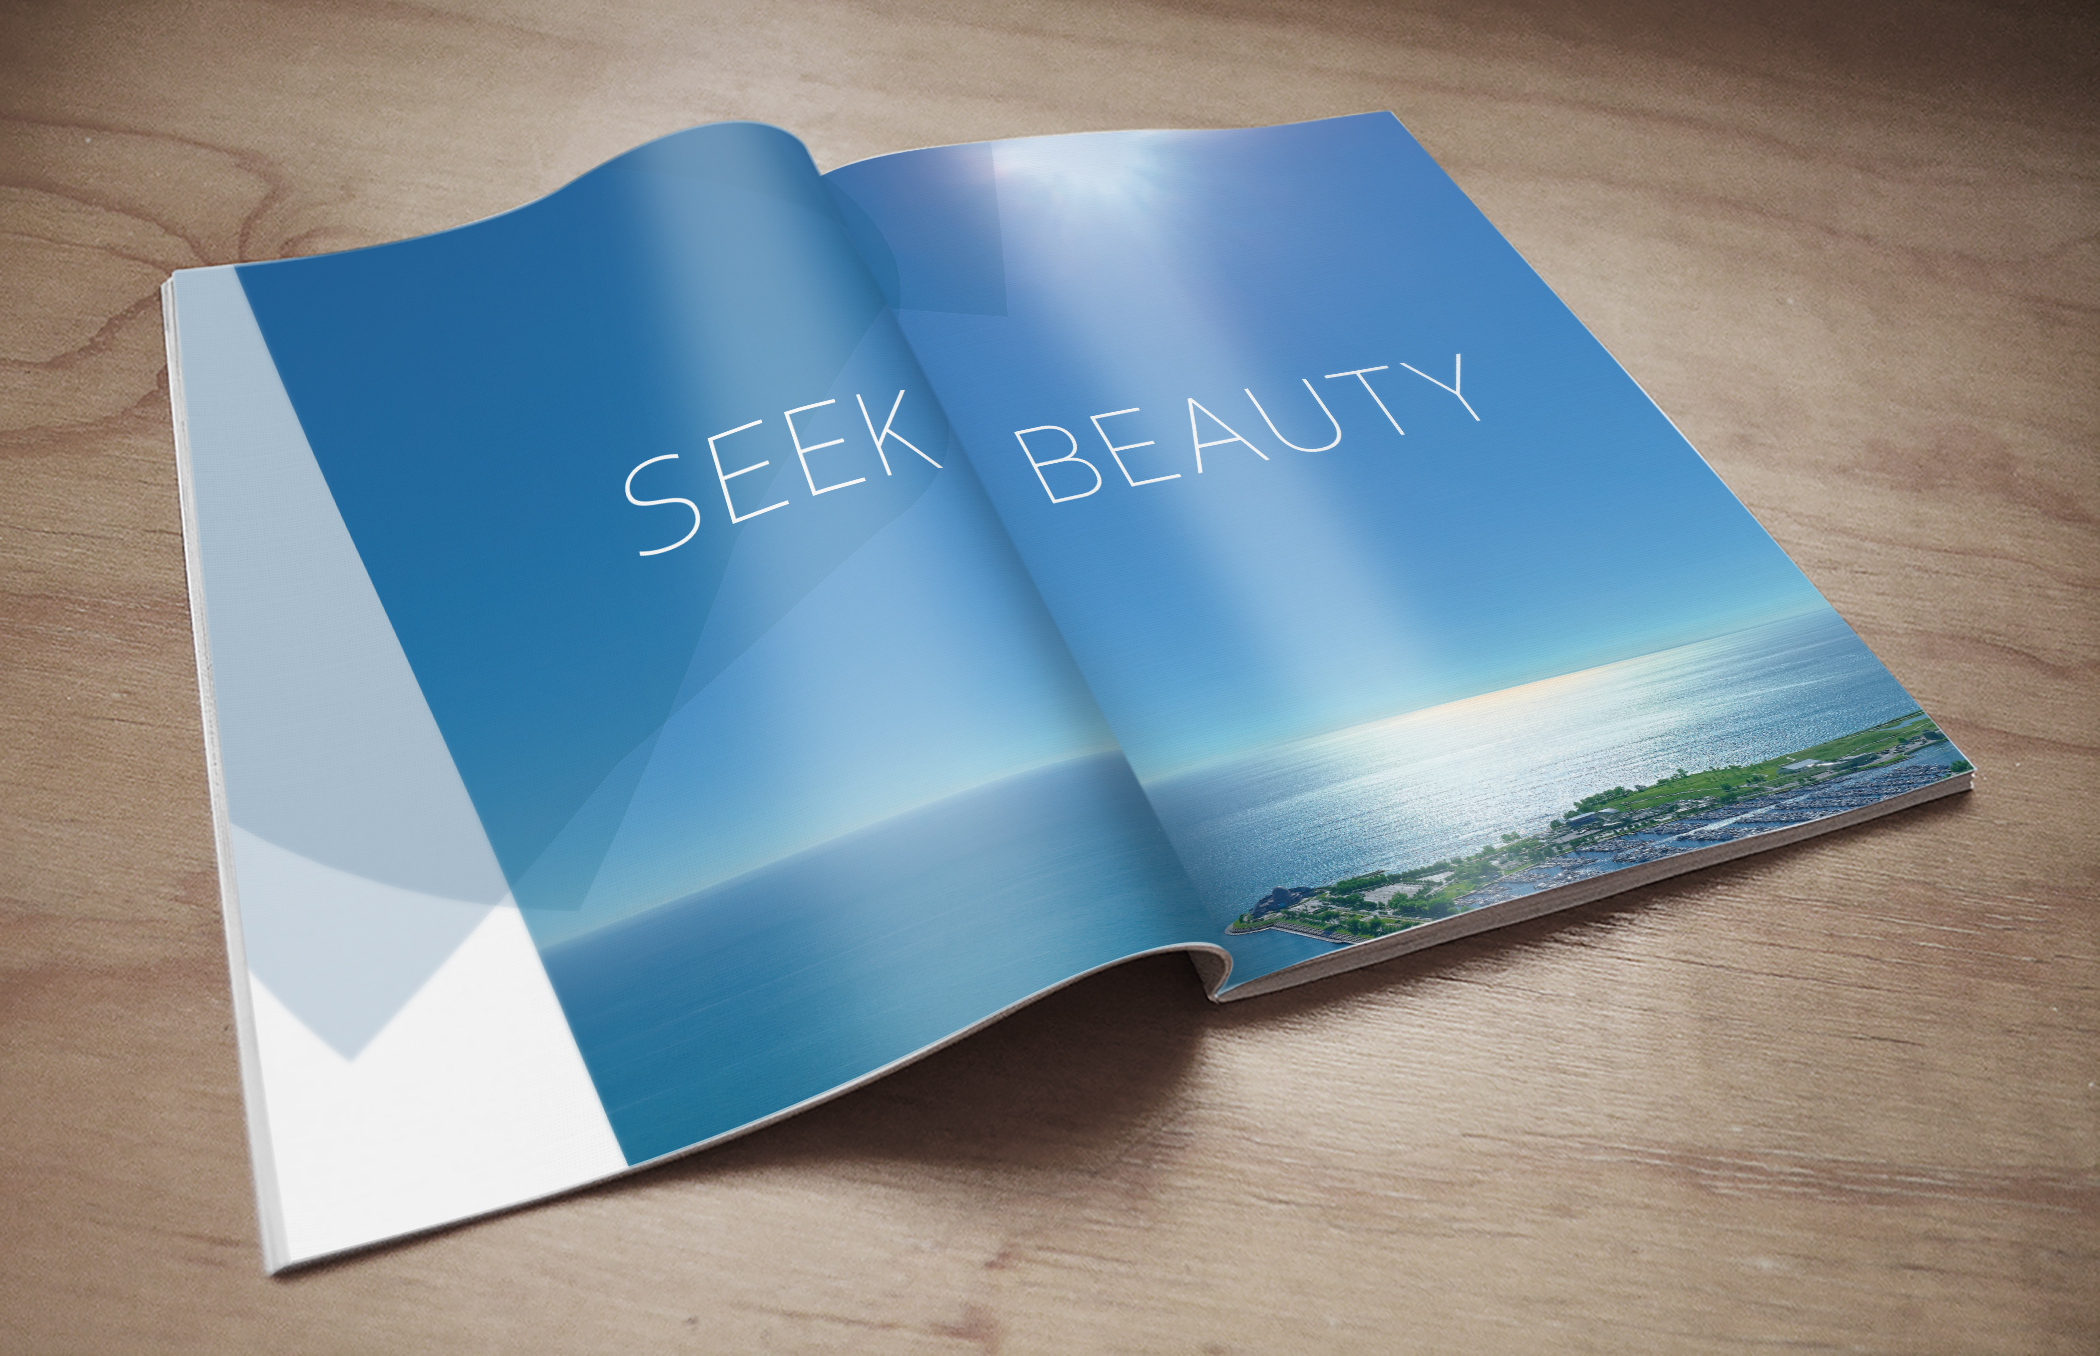 1000M's Seek Beauty Campaign